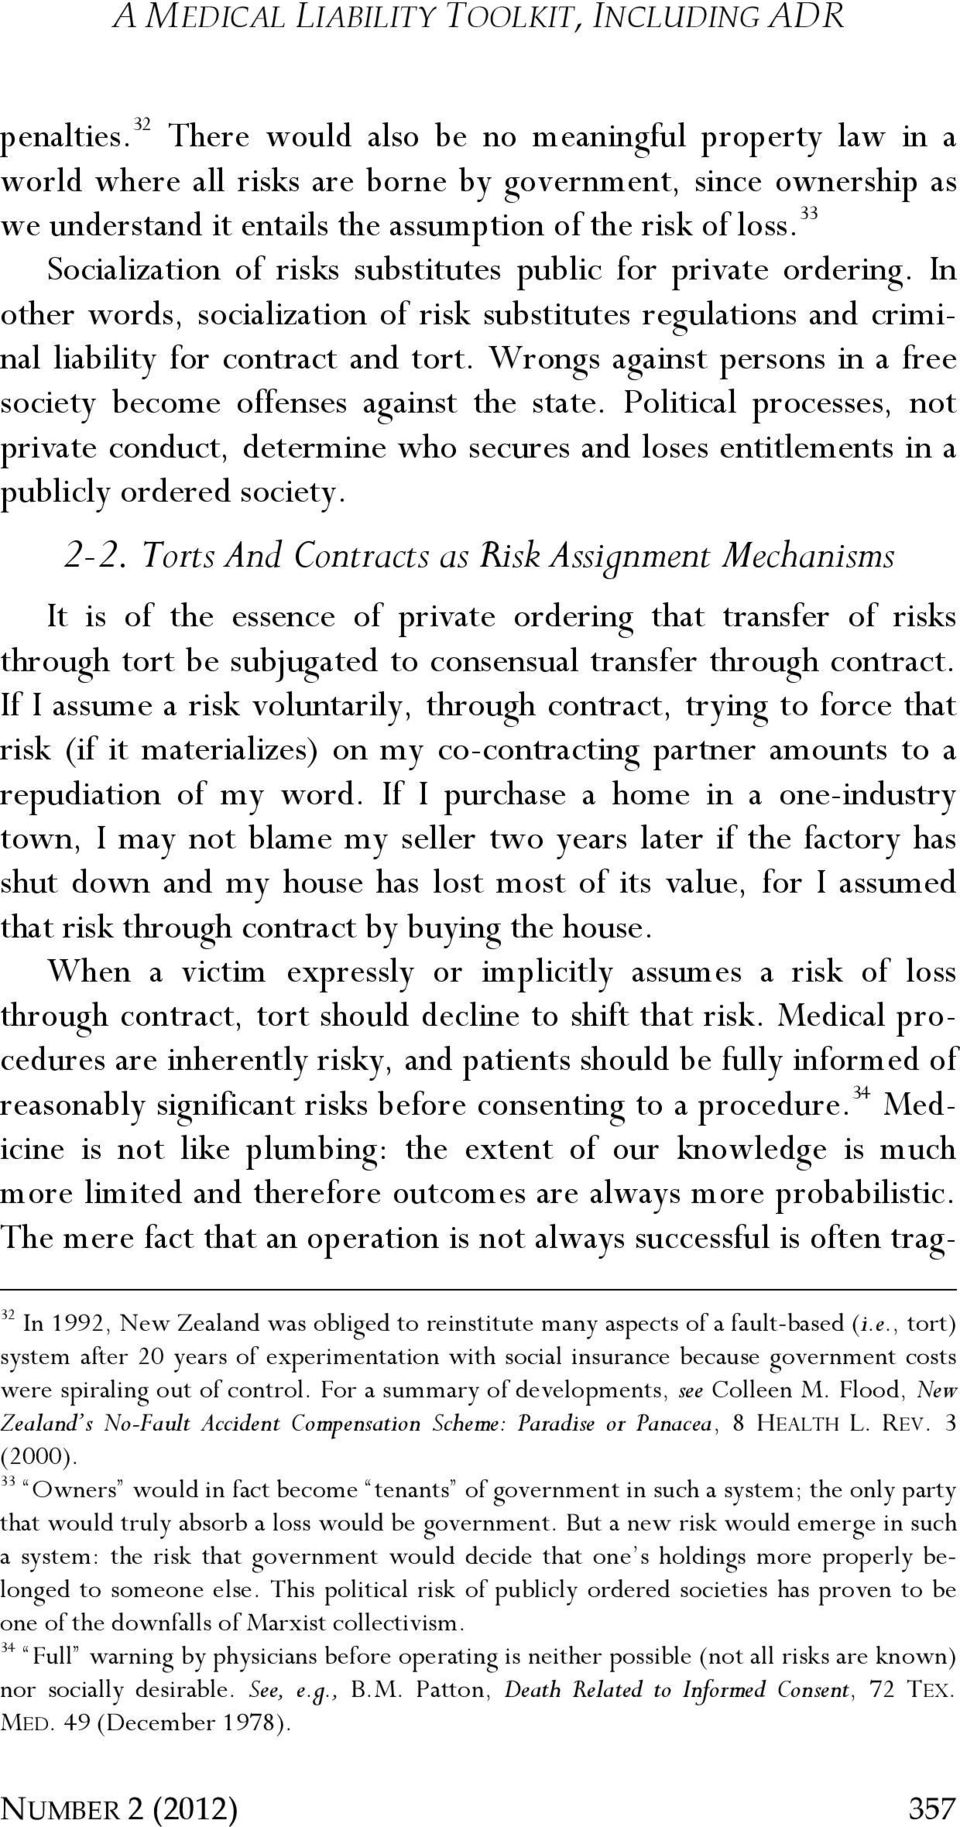 33 Socialization of risks substitutes public for private ordering. In other words, socialization of risk substitutes regulations and criminal liability for contract and tort.